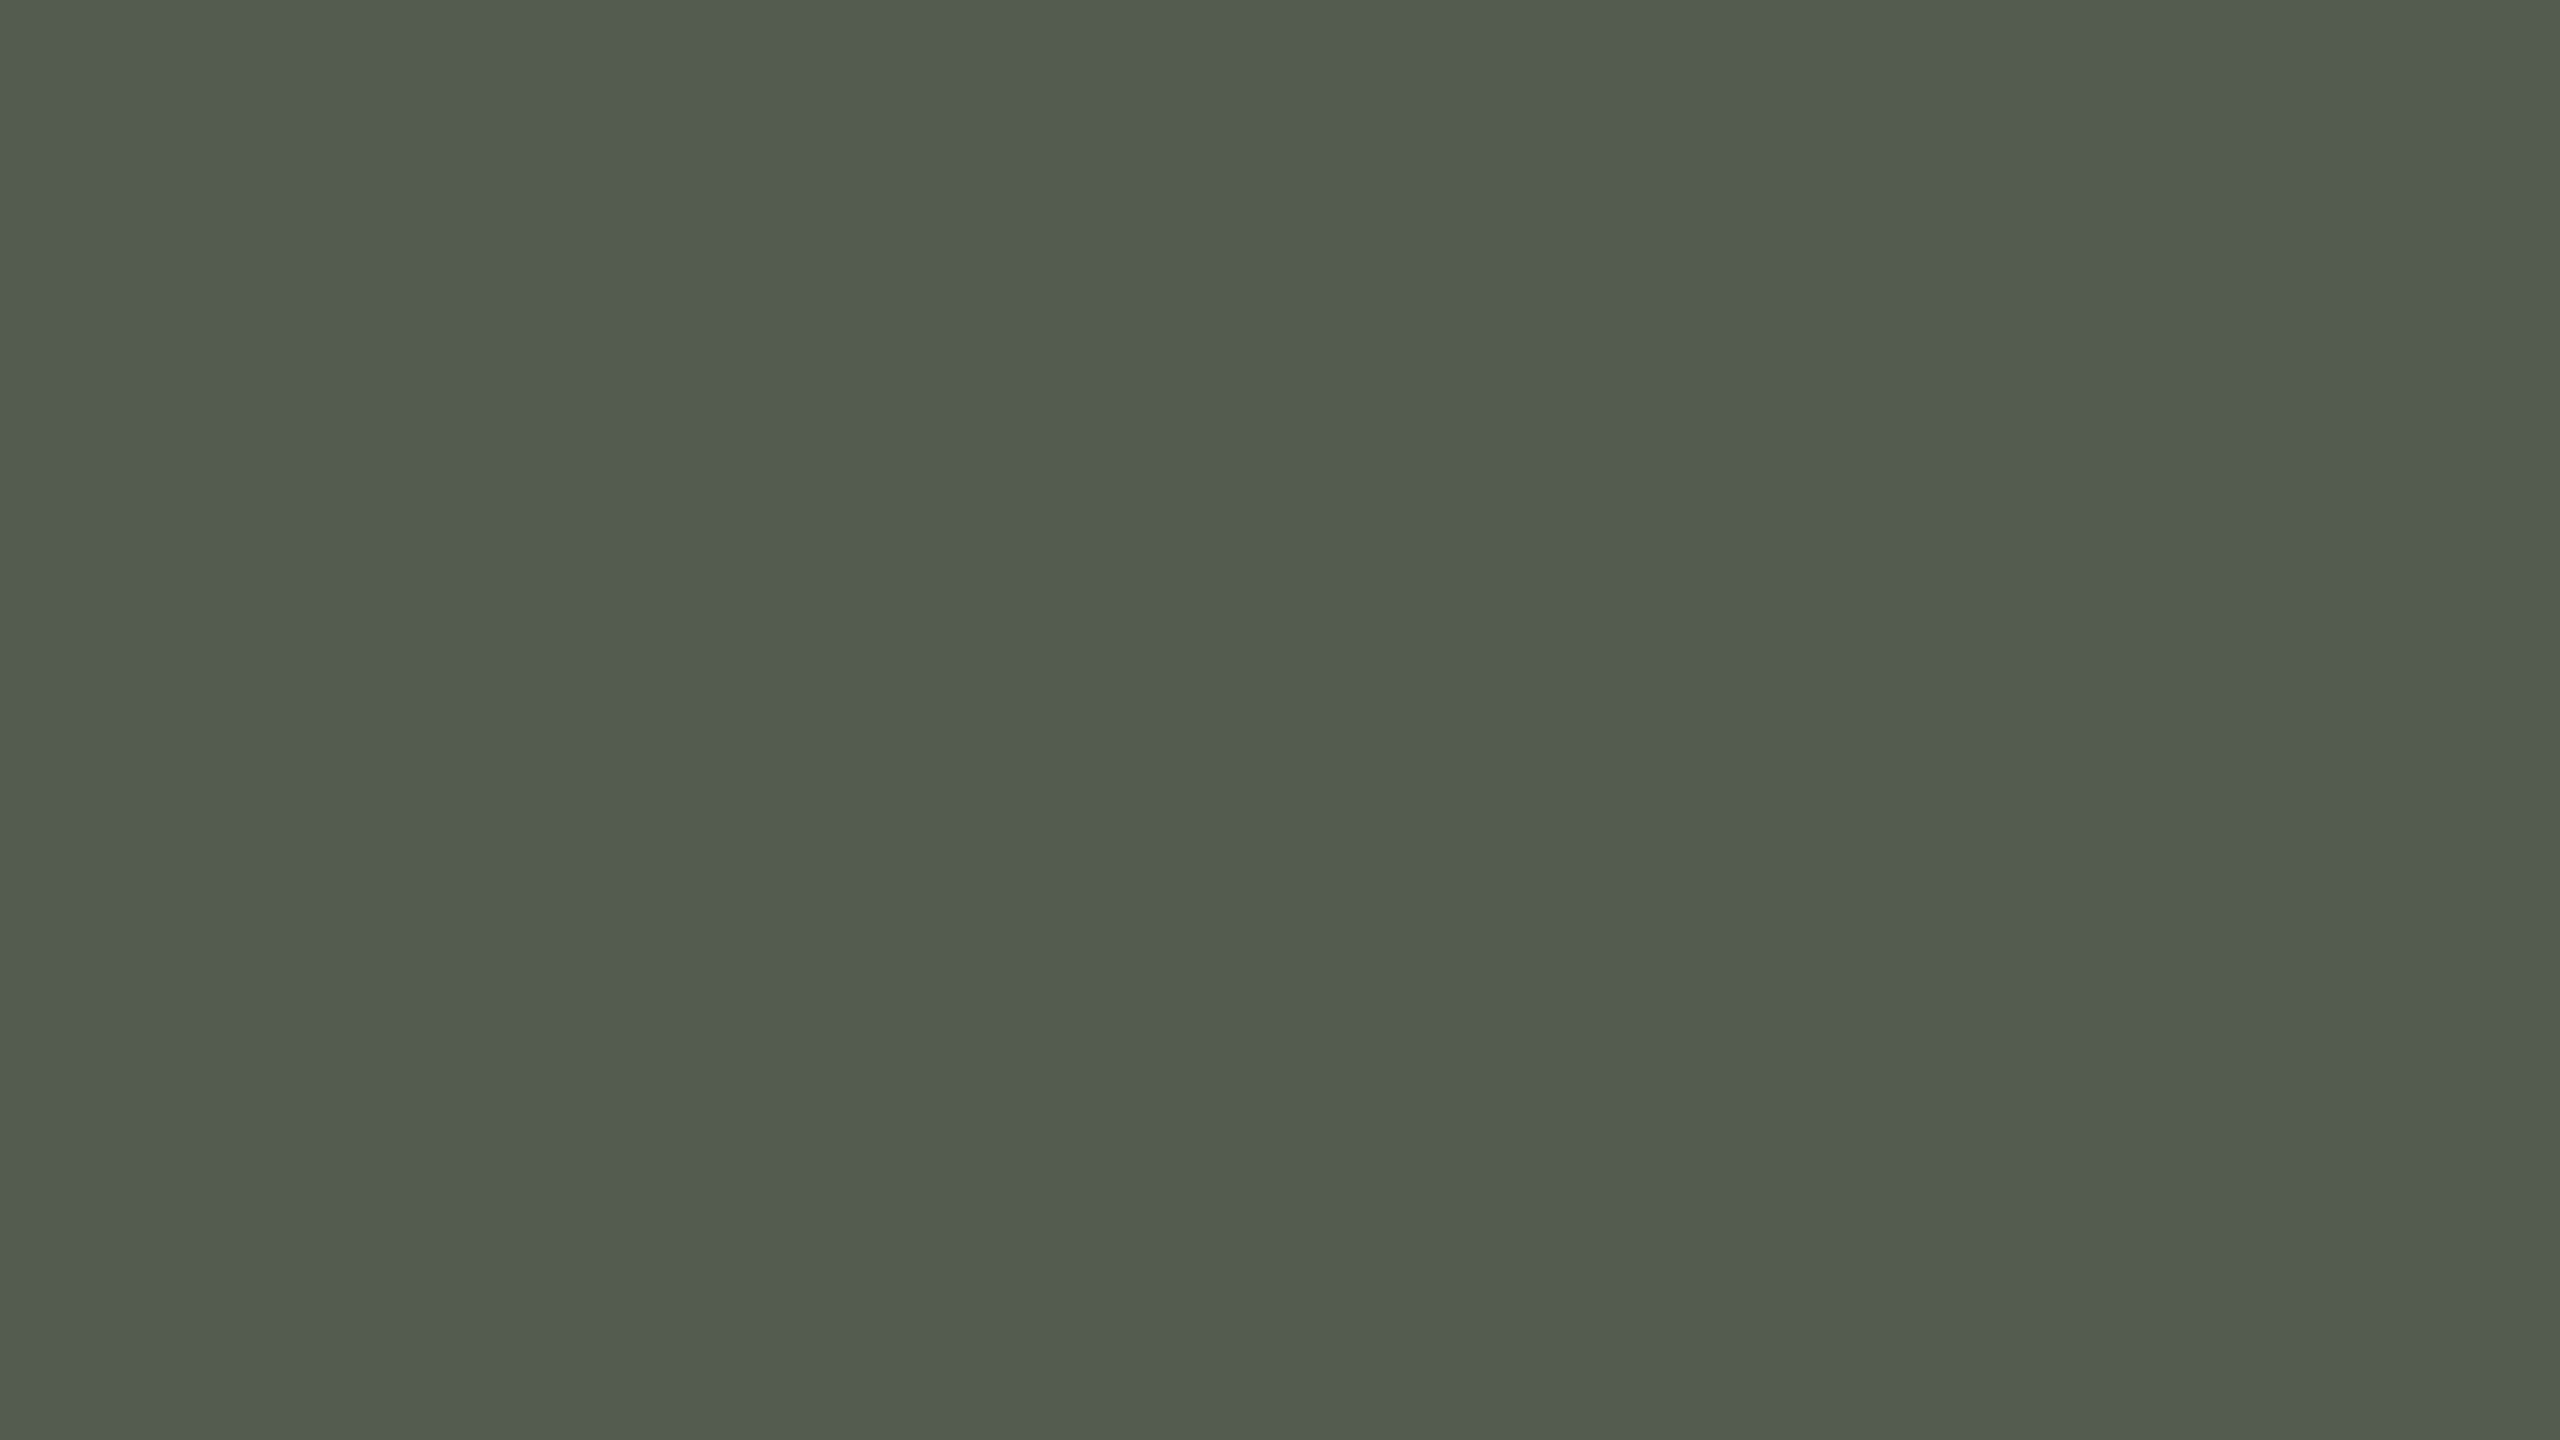 2560x1440 Ebony Solid Color Background